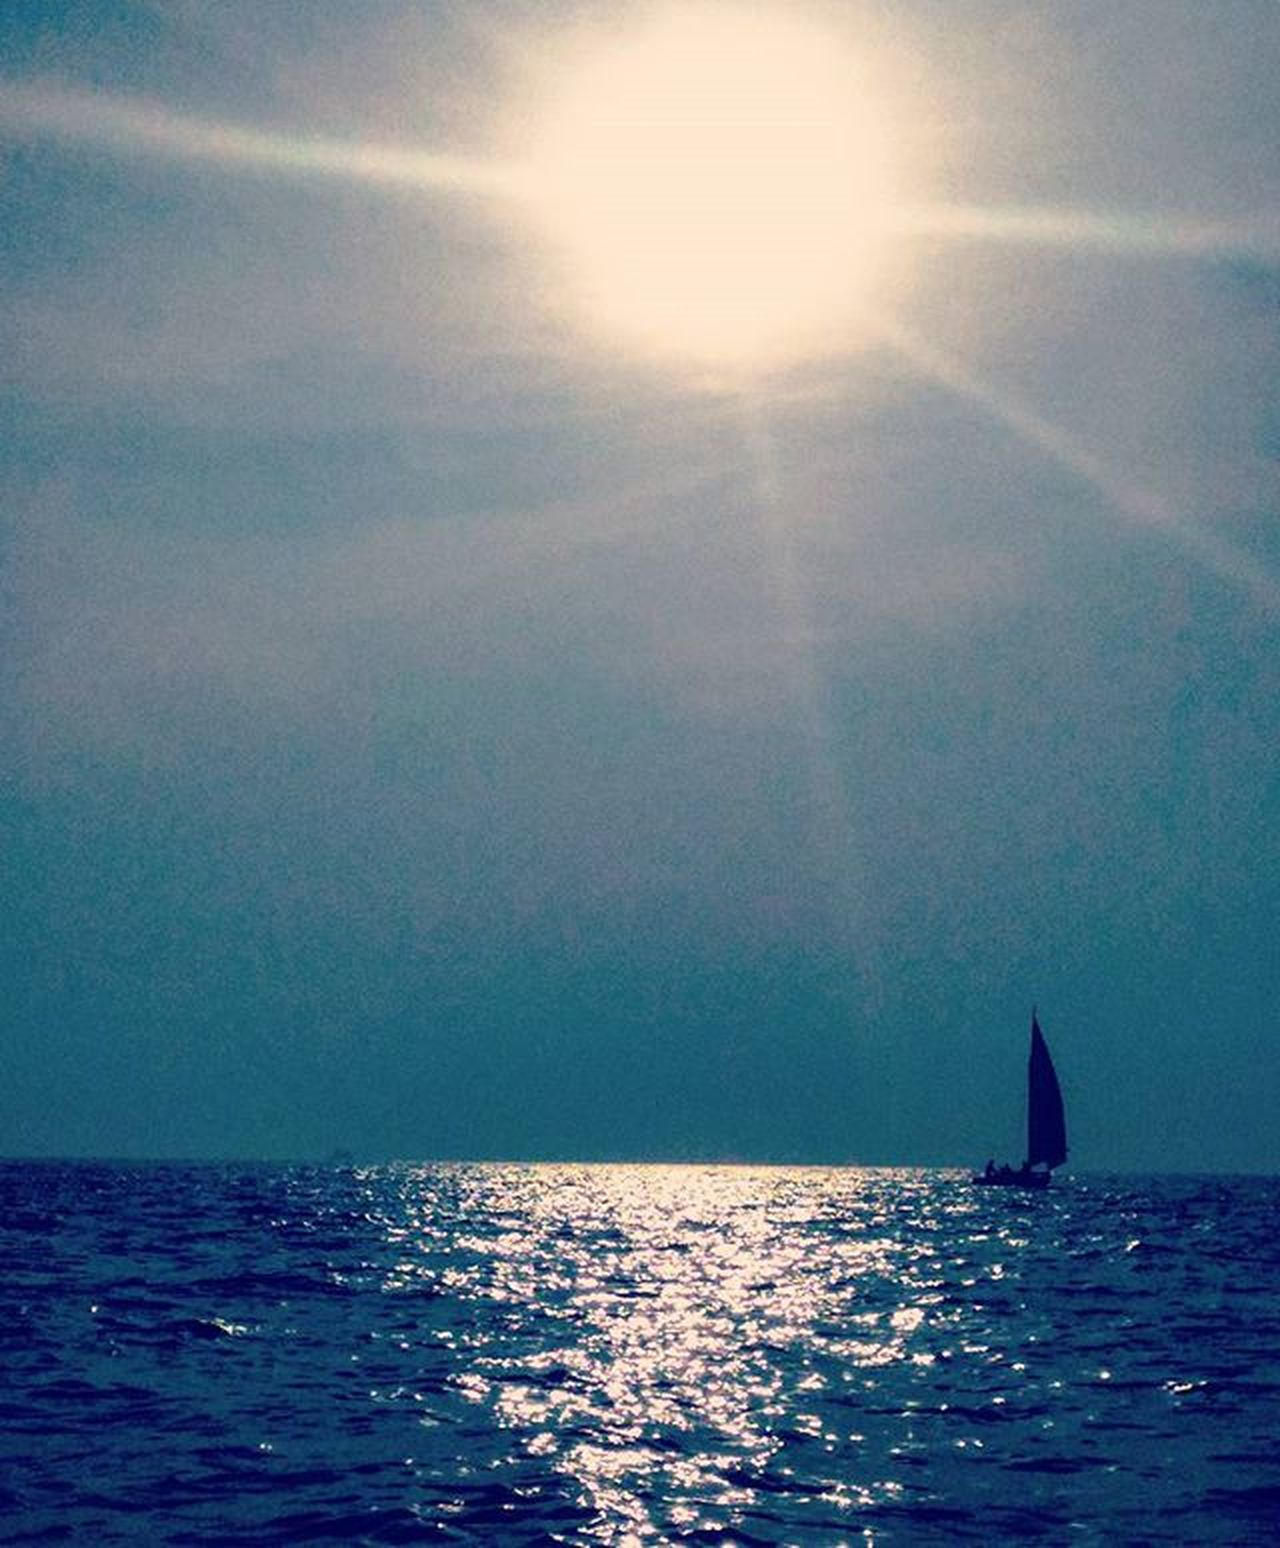 Some mornings are just magical. Boatride Motordiaries Early Morning Sailing Sailboat Ocean Boats⛵️ Sunrays Reflection